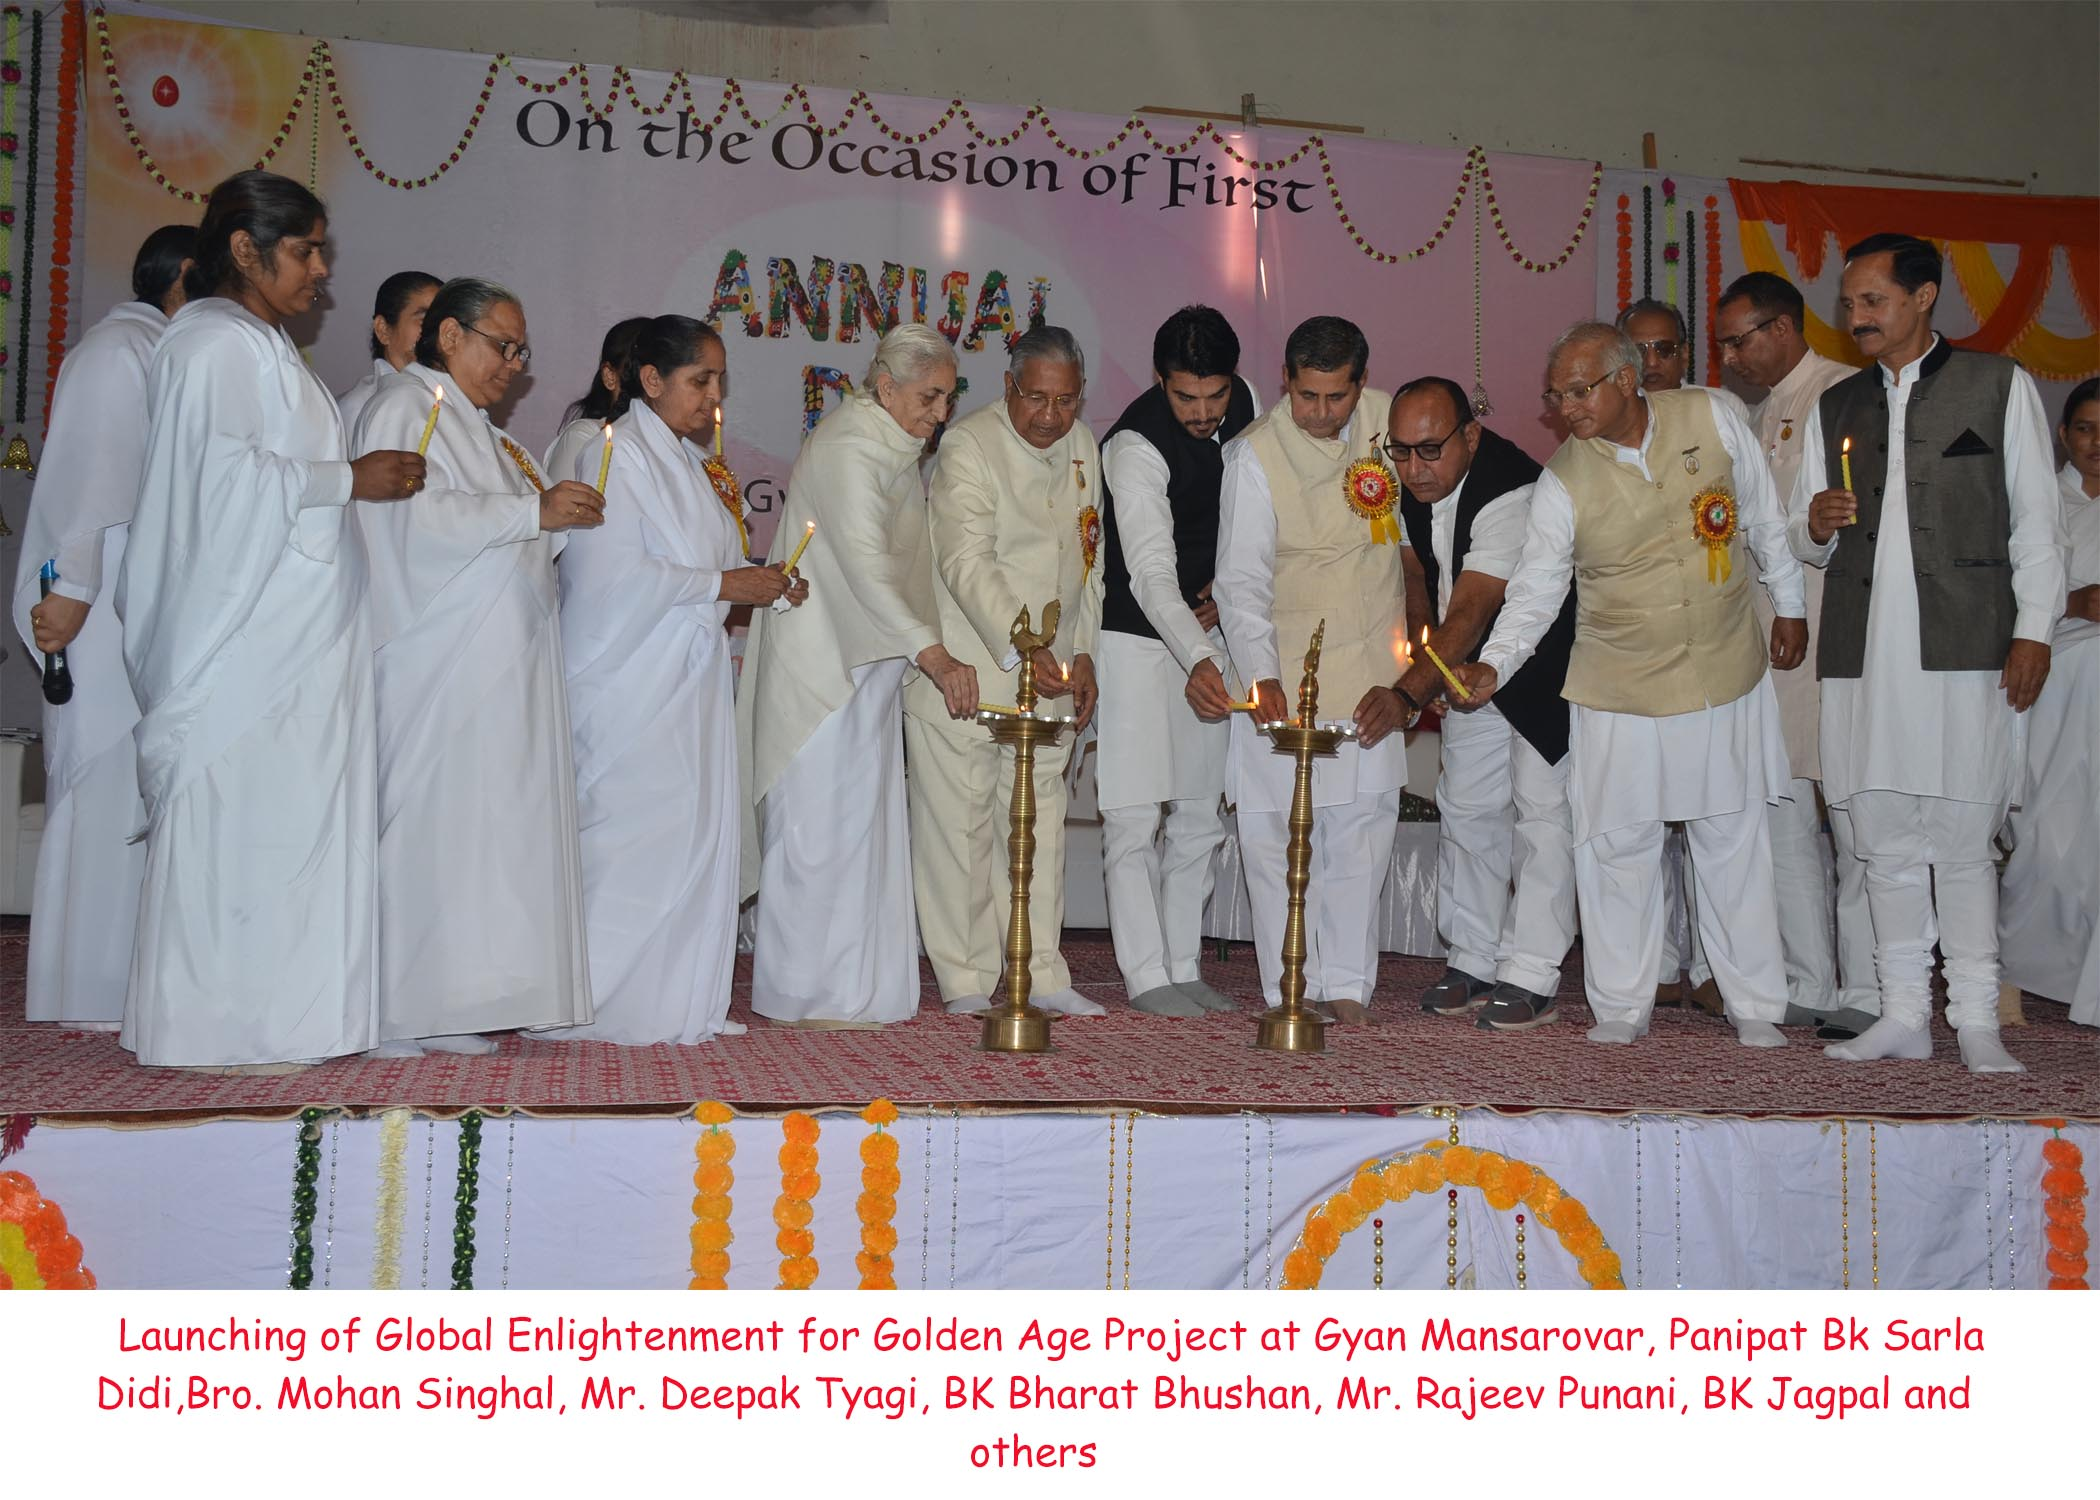 Launch of Global Enlightenment for Golden Age Project at Panipat